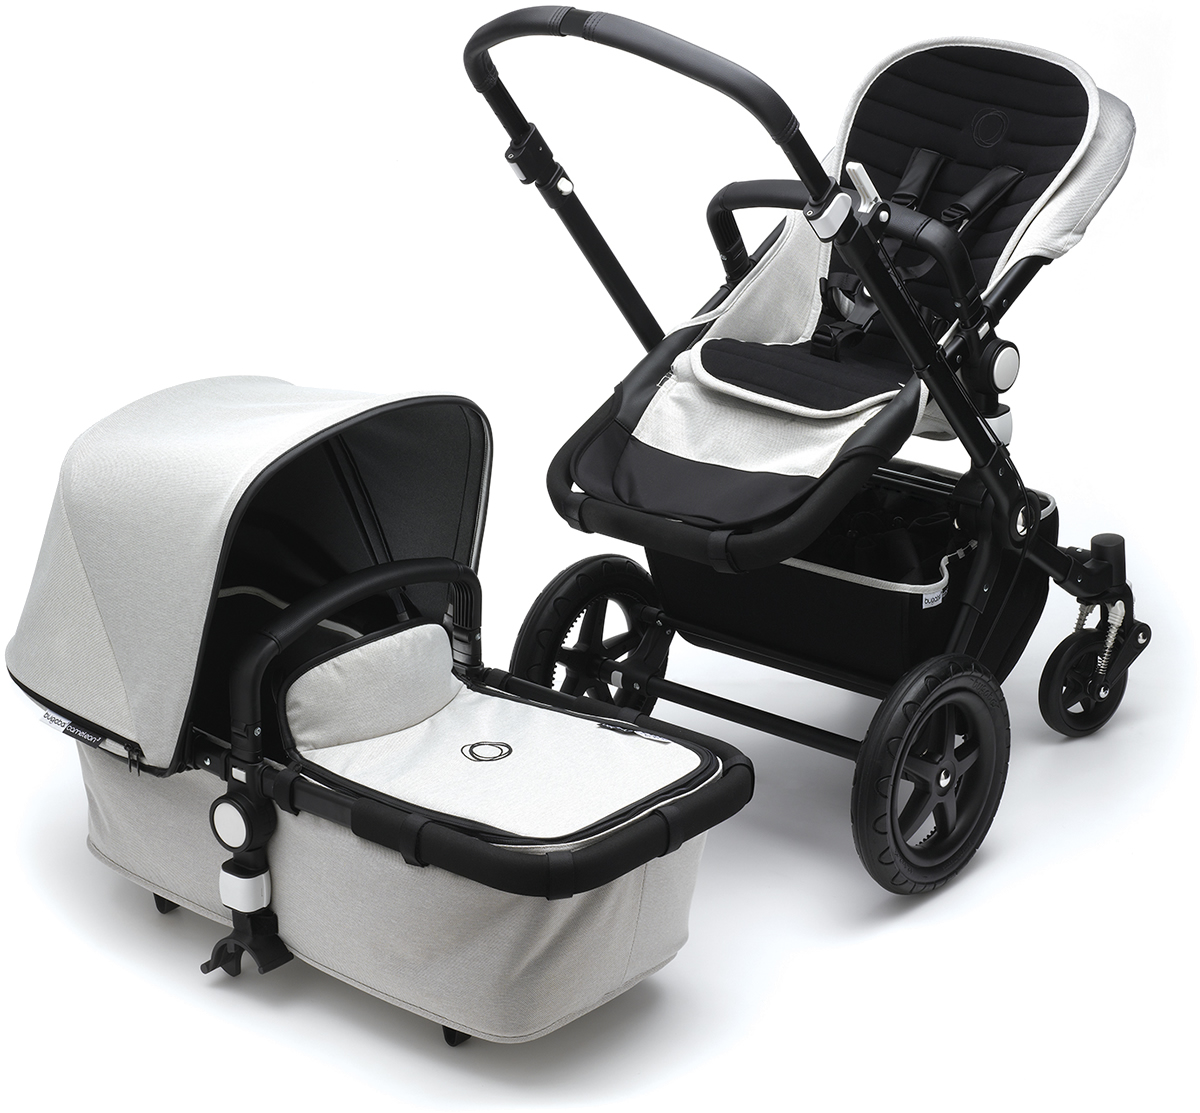 Bugaboo Cameleon Atelier Special Edition Stroller with Bassinet